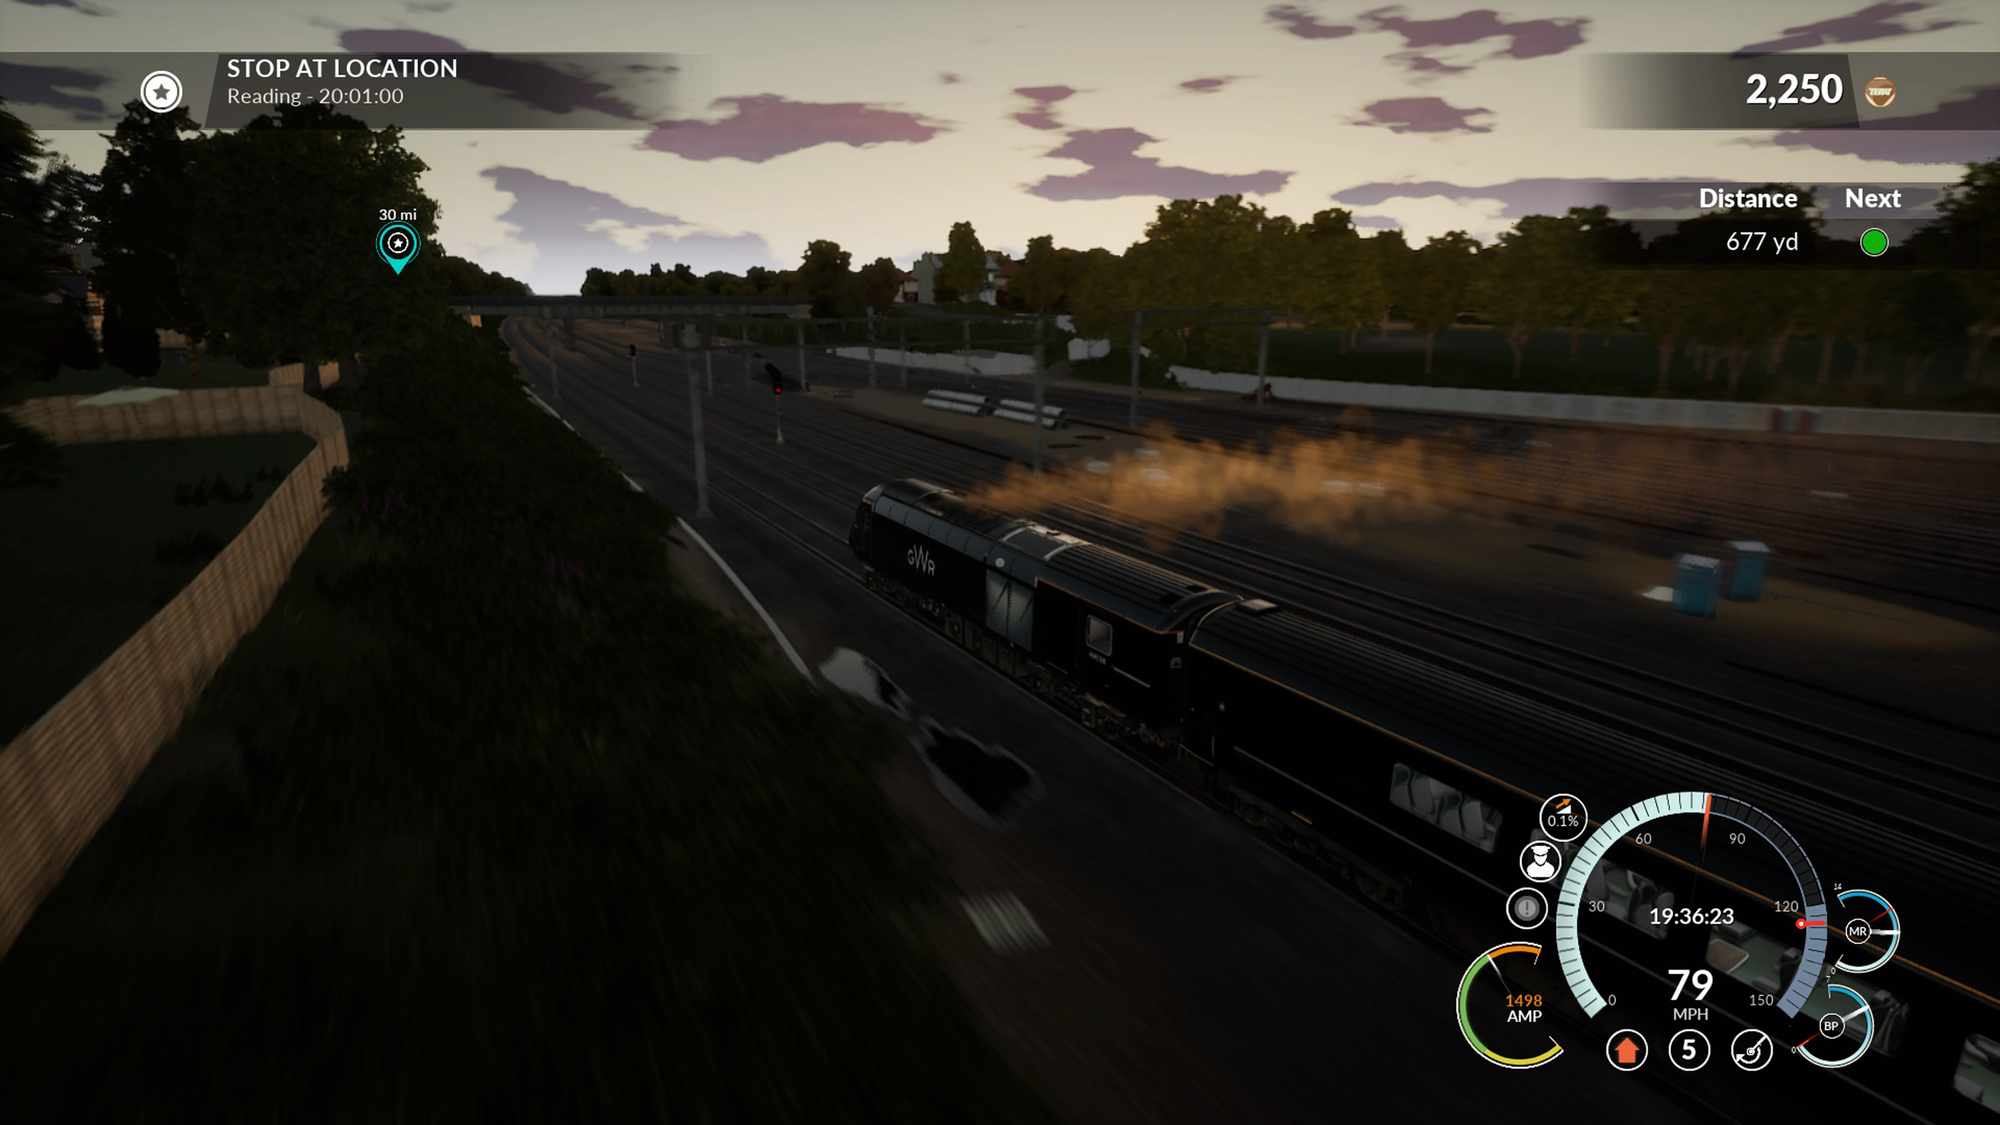 Train Sim World PS4 Review - Stuck at the Station